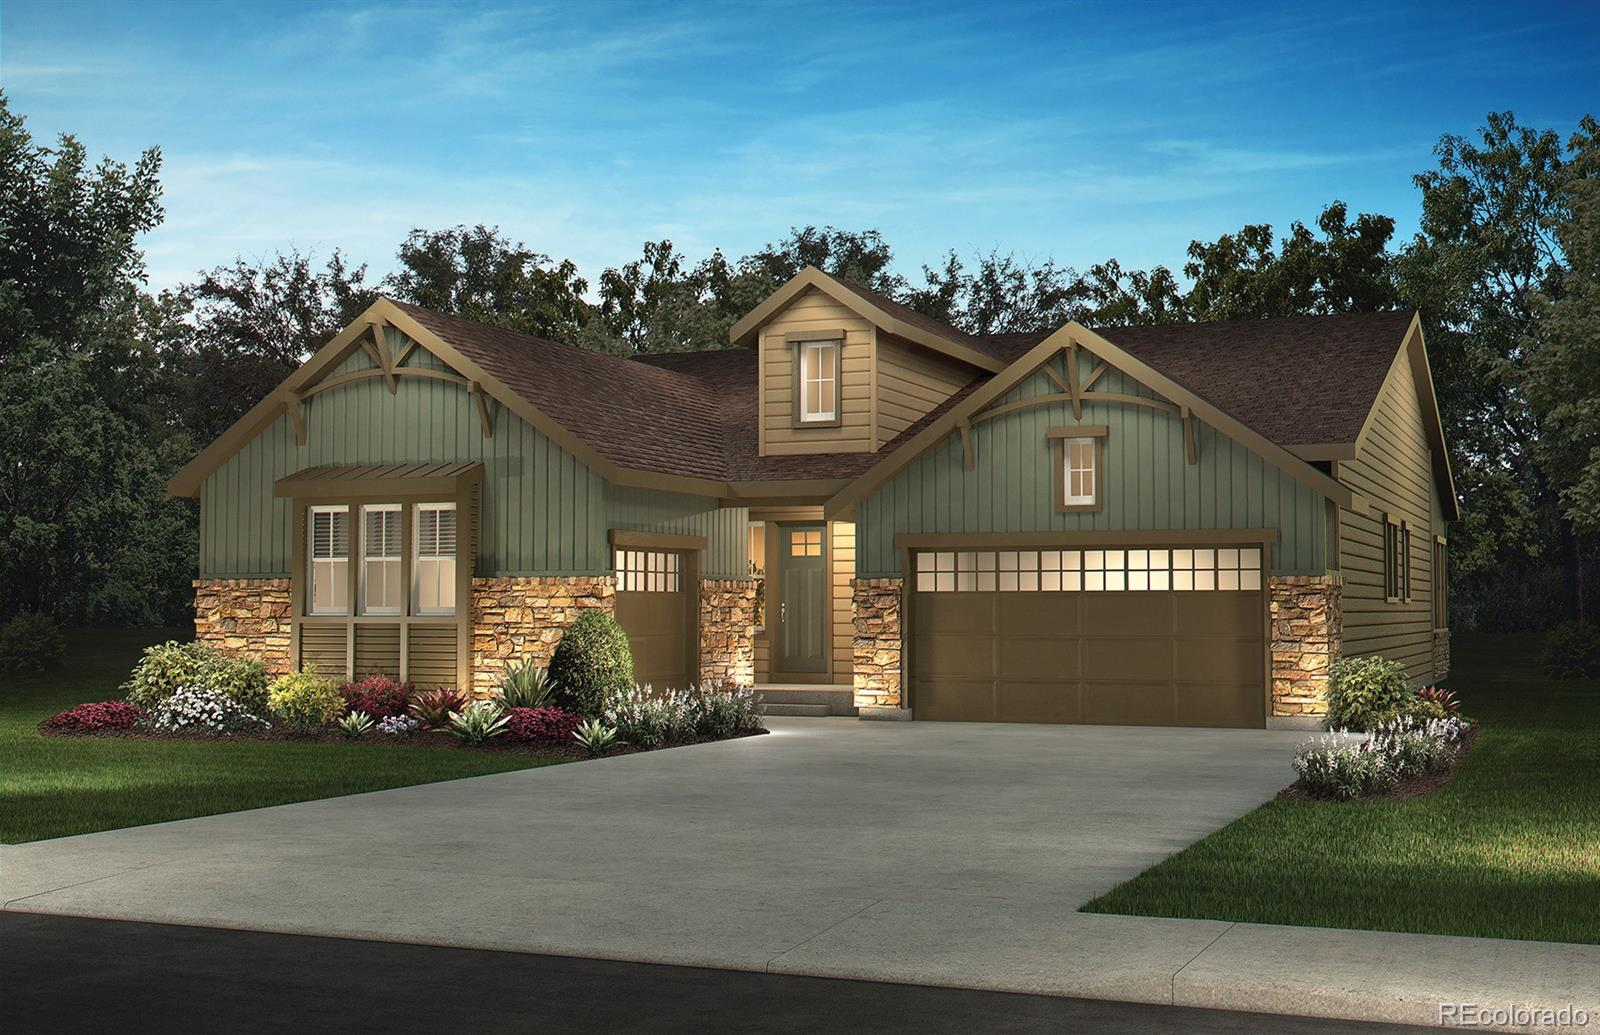 Available September 2020! Gorgeous Coulter Pine ranch plan features 2 beds, 2.5 baths, study, great room, kitchen, unfinished basement for future expansion, 2 + 1 car garages and more.  Gorgeous finishes and designs throughout.  Design finishes include Mannington Restoration Palace Plank Stone wood-style laminate floors, tile floors in the bath and laundry rooms, Carrara Mist engineered stone kitchen counters with a full backsplash, Pebble Rock engineered stone master bath counters, Merillat Classic Maple Cotton kitchen perimeter cabinetry and Maple Basalt cabinetry in the reminder of the house. The spacious kitchen includes a large island, walk-in pantry and breakfast nook.  The great room opens to the kitchen and has a cozy gas fireplace.  Other finishes and upgrades include a utility sink in the laundry, optional wrought iron railing, tile floors in the bath and laundry room.  HOA Fees are included in property taxes.  Close to dining, shopping, entertainment and other amenities. Easy commute to Southlands, Lone Tree, DTC, Denver and beyond.  Don't miss your opportunity.